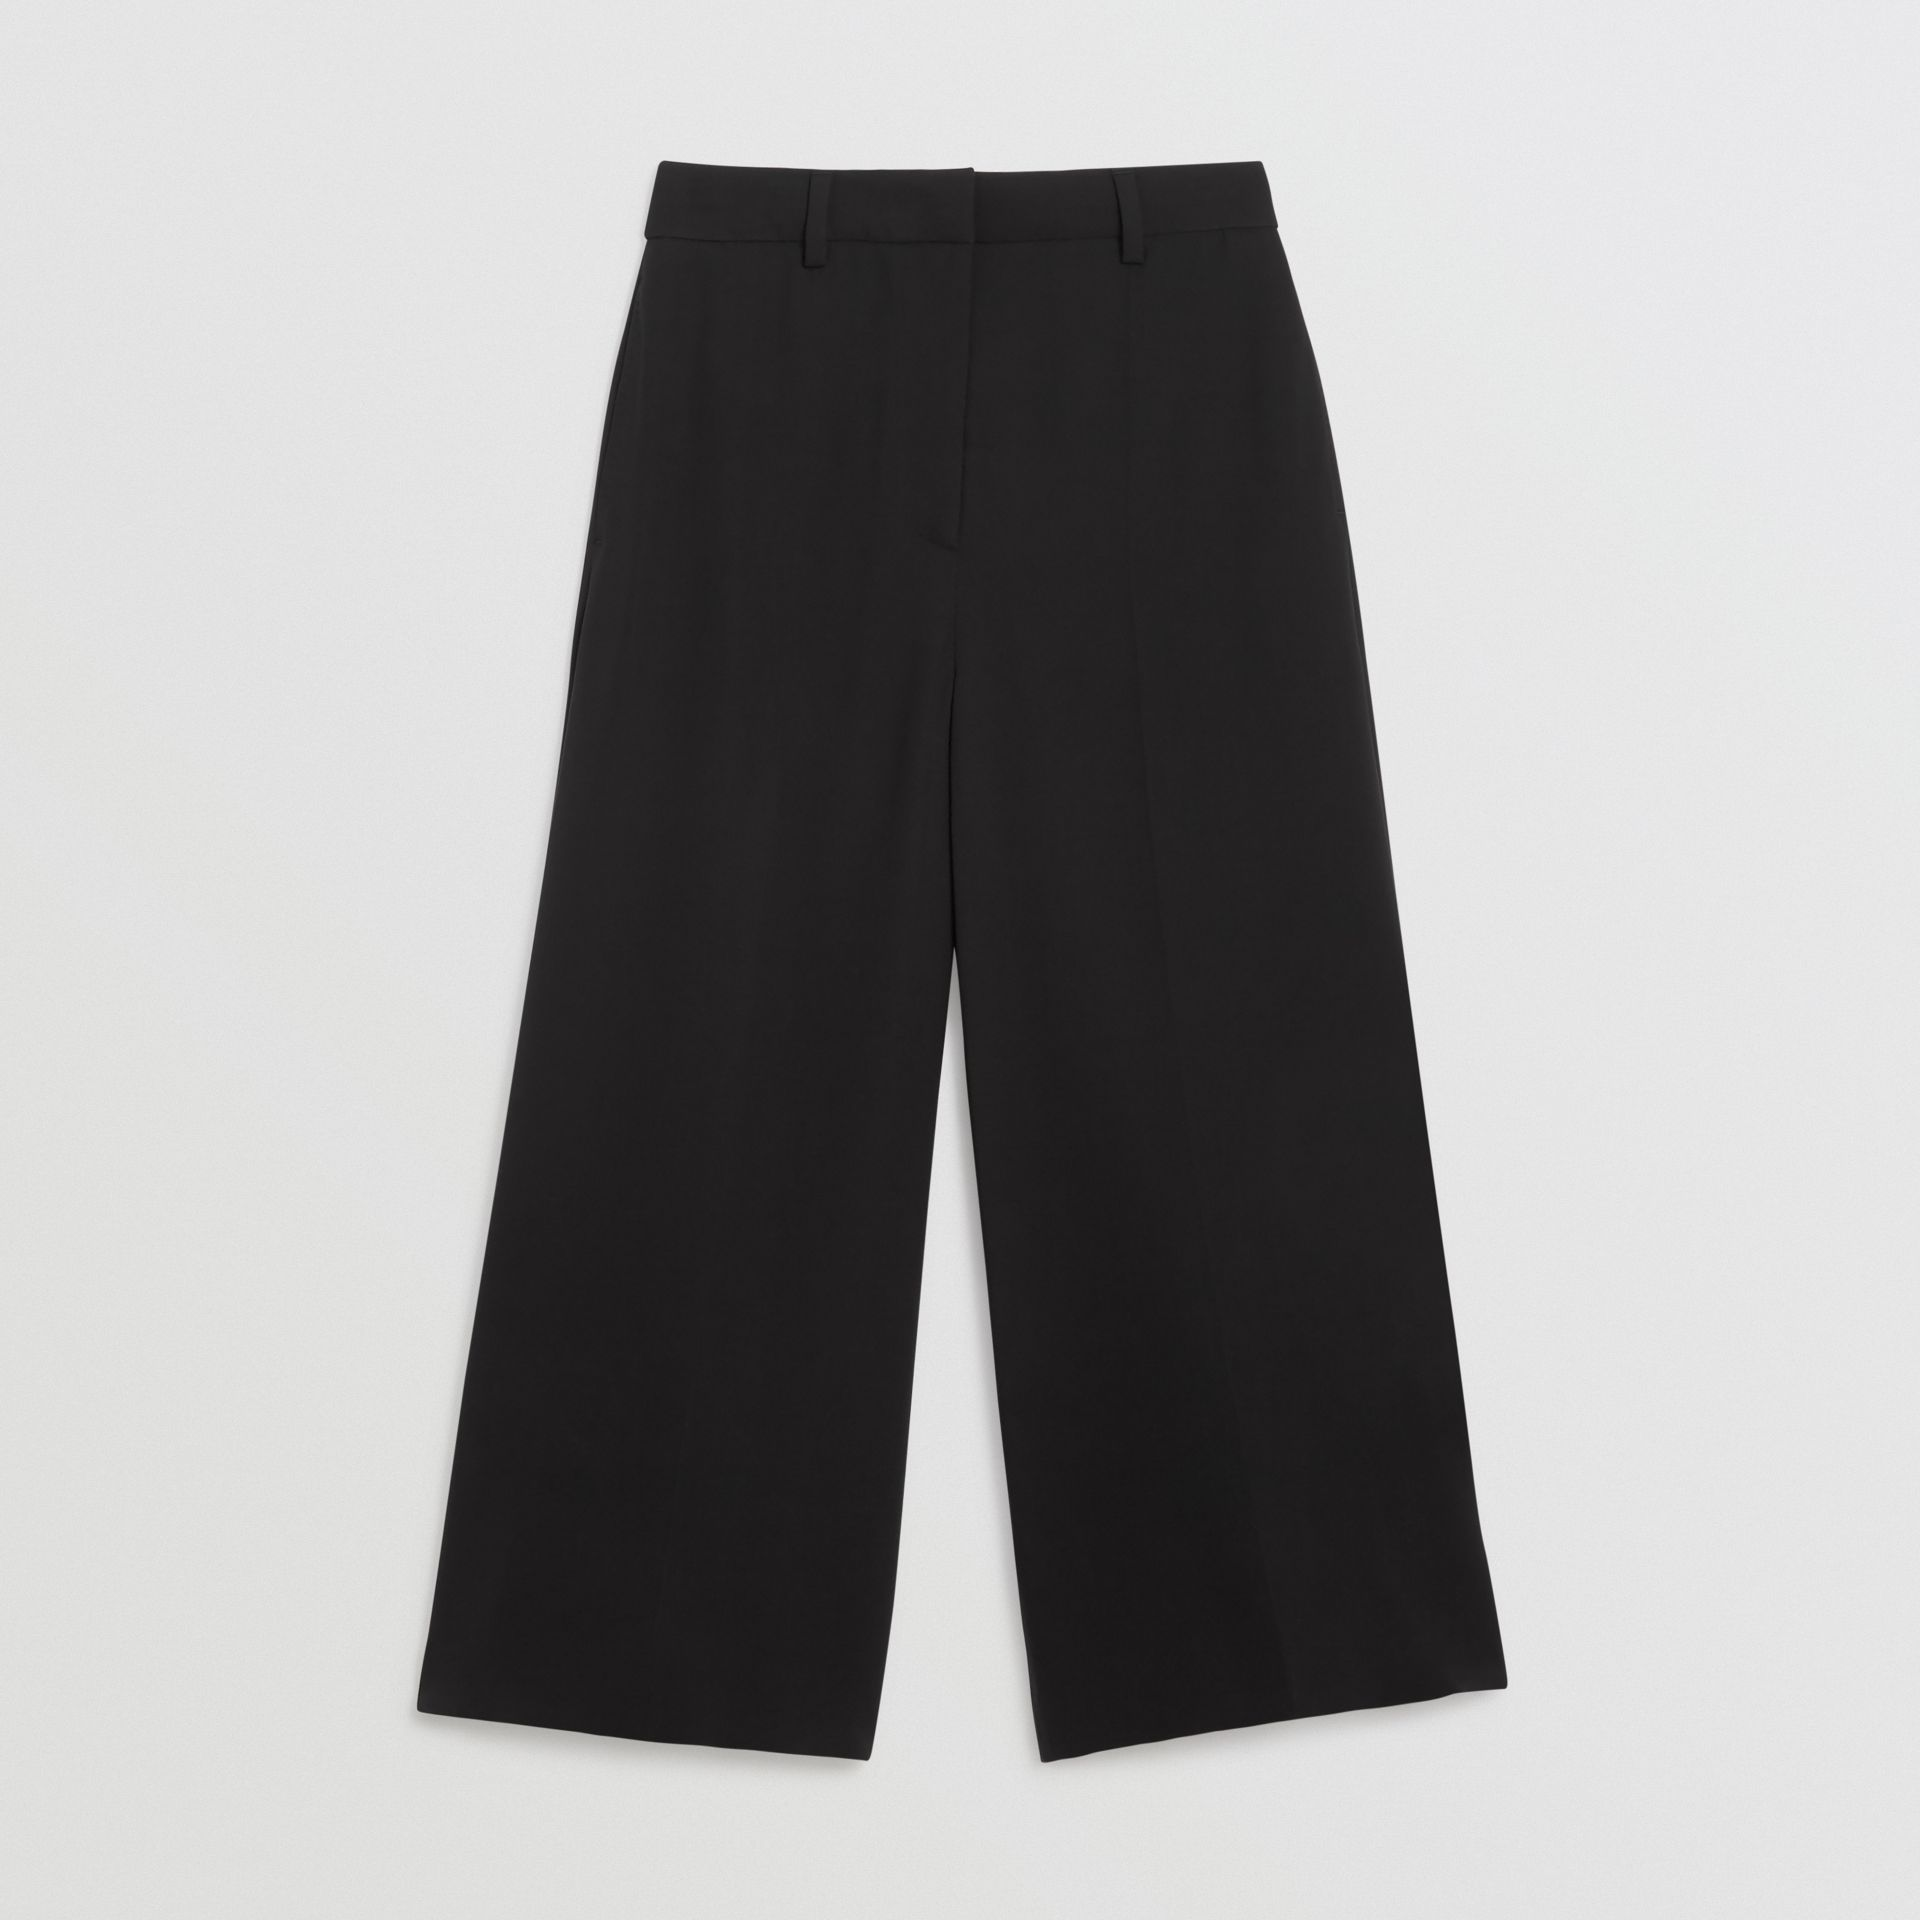 Silk Wool Tailored Culottes in Black - Women | Burberry - gallery image 3